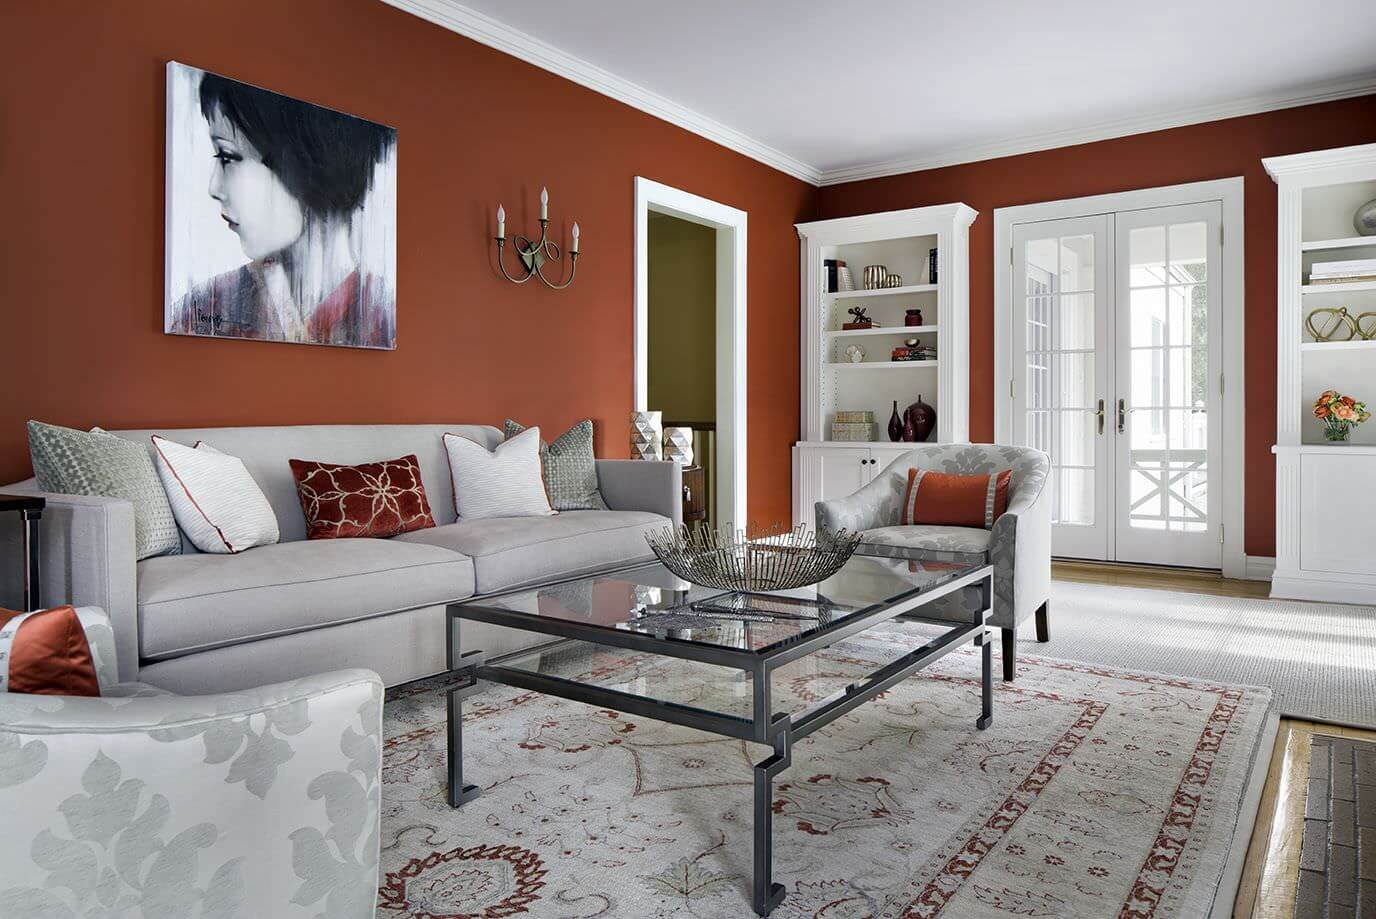 Spacious living space featuring rustic red walls along with white shelves and gray seats.